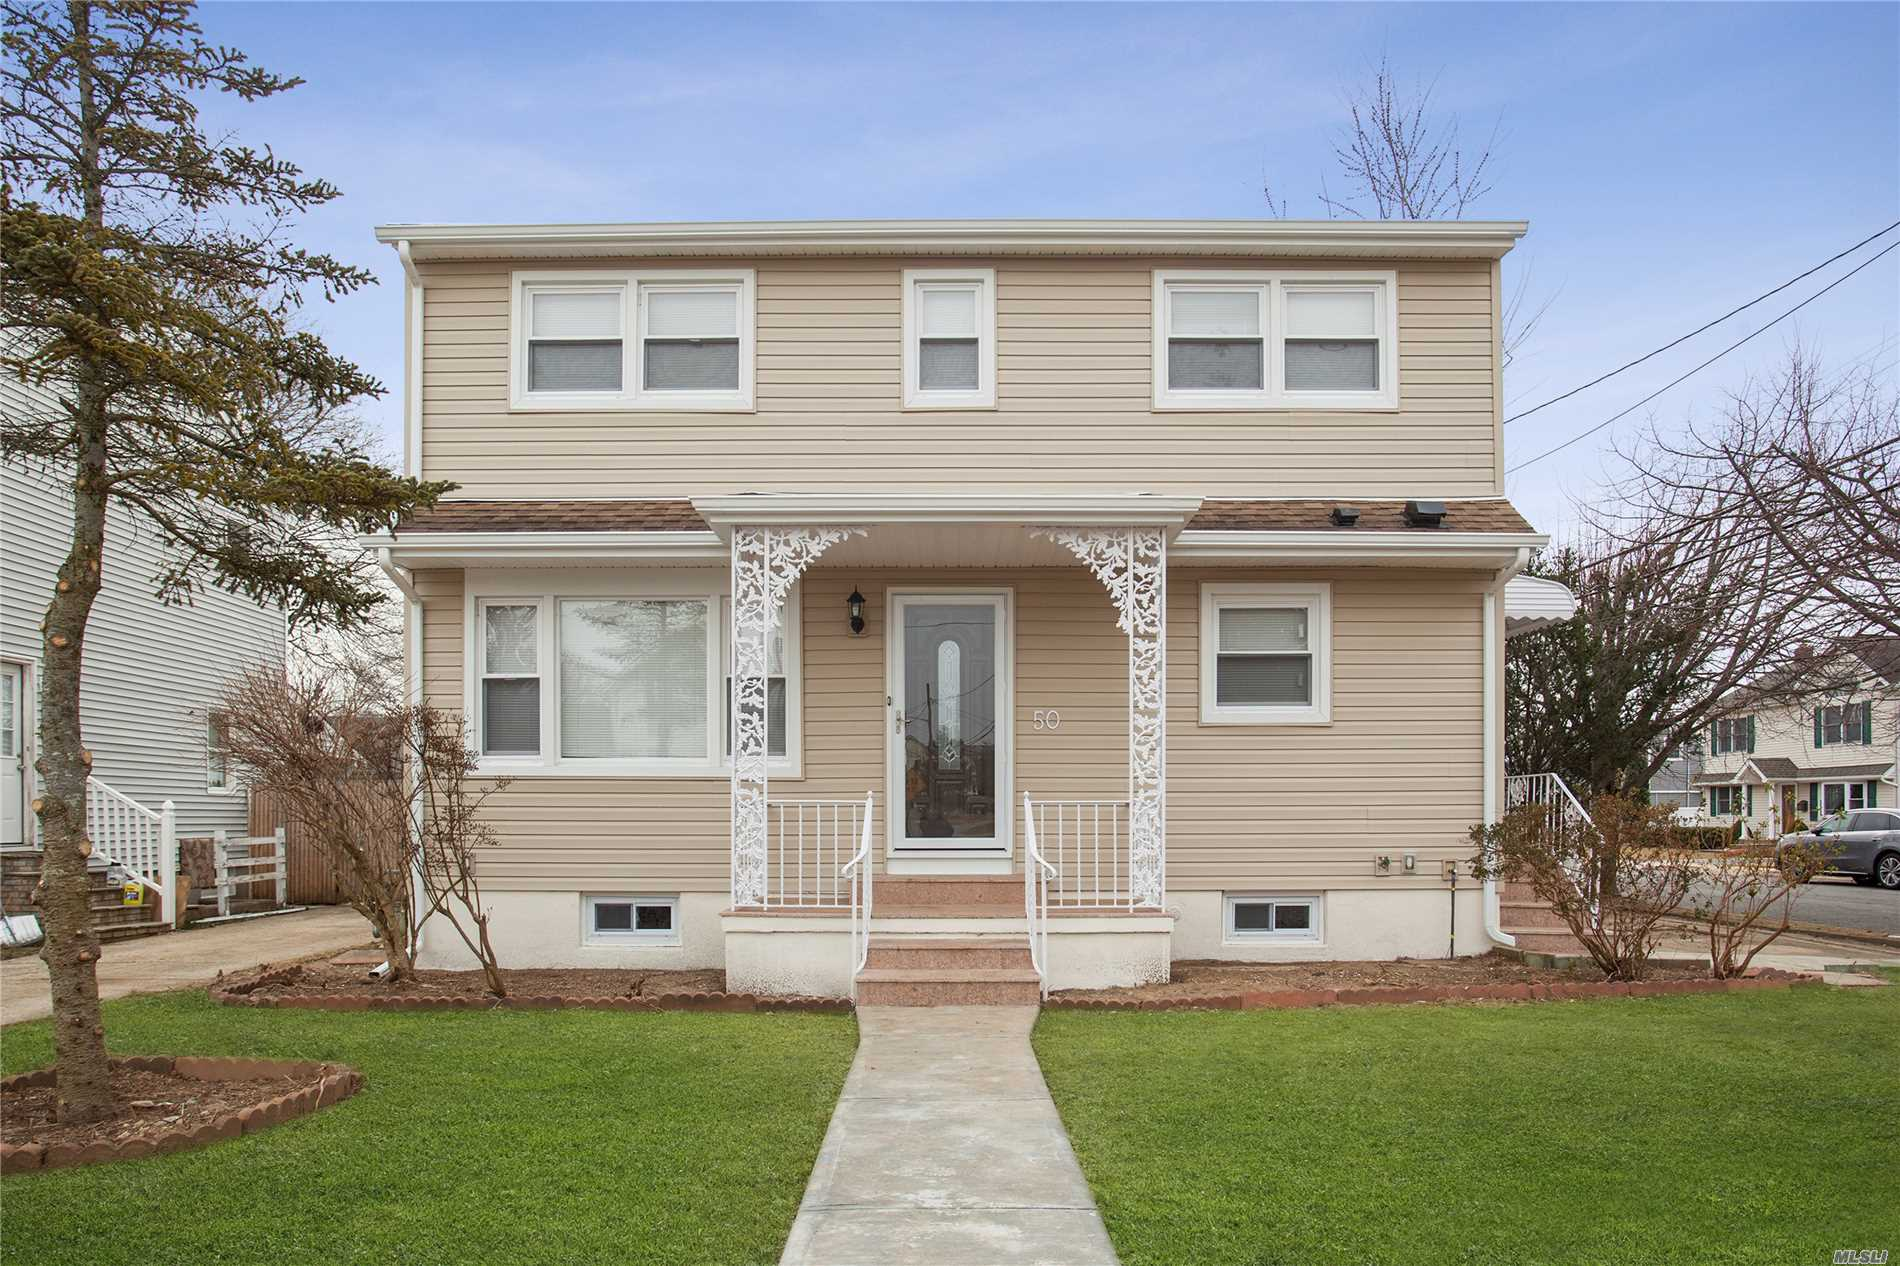 Impeccable Newly Renovated Colonial Home. First Fl Features A Beautiful Living Rm, Dining Room, Updated Kitchen With Stainless Steel Appliances, And A Master Bedroom Along With A Full Bathroom. Large Second Fl With 5 Spacious Bedrooms. Full Finished Basement With Full Bathroom And Separate Outside Entrance. Walking Distance To Lirr Station & Public Library. Highway Exit Only A Few Blocks Away.